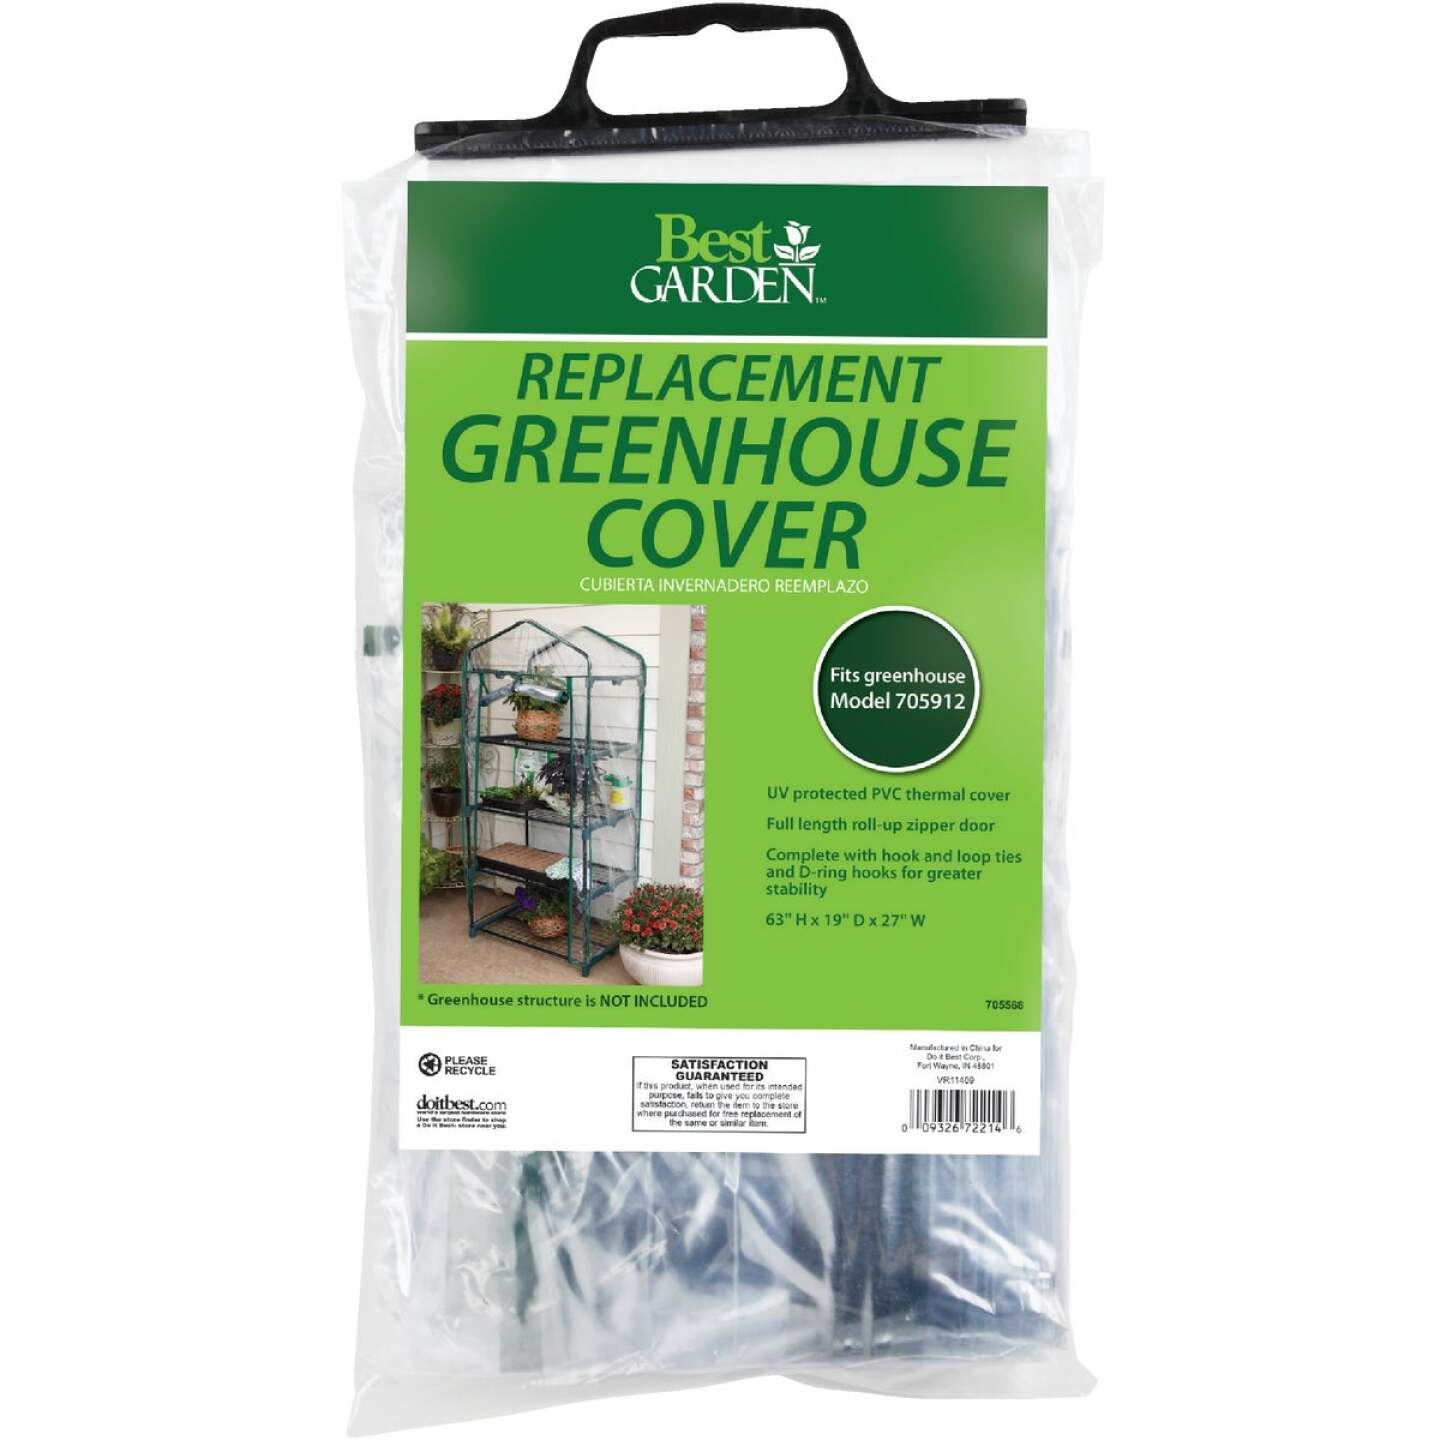 Best Garden 27 In. W. x 63 In. H. x 19 In. D. Replacement Cover For 4-Shelf Greenhouse Image 1